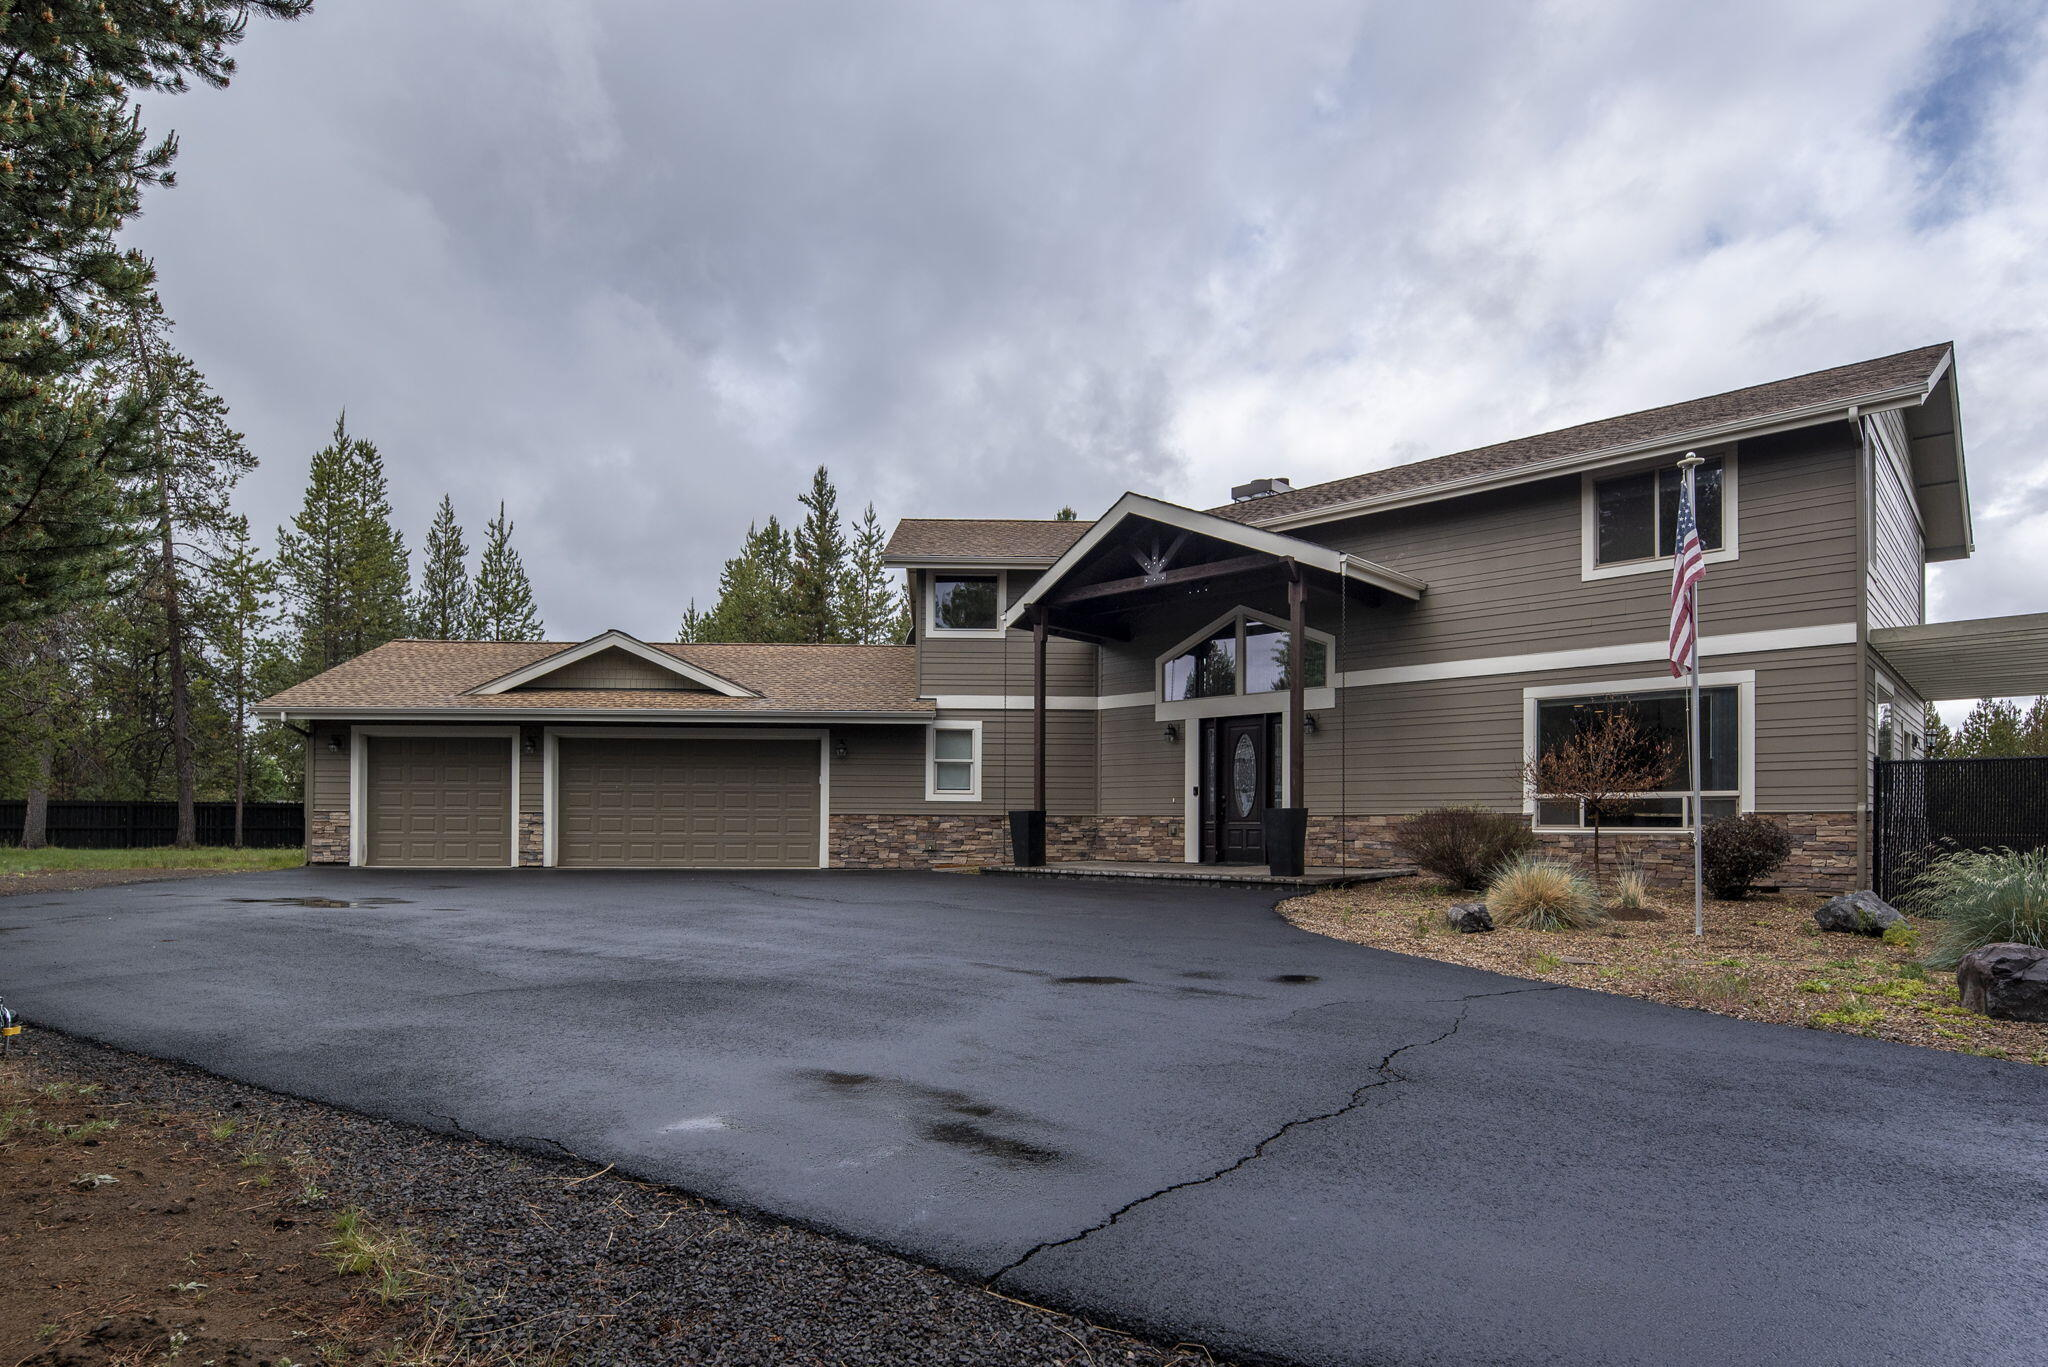 67-web-or-mls-16767 Donner Place-68